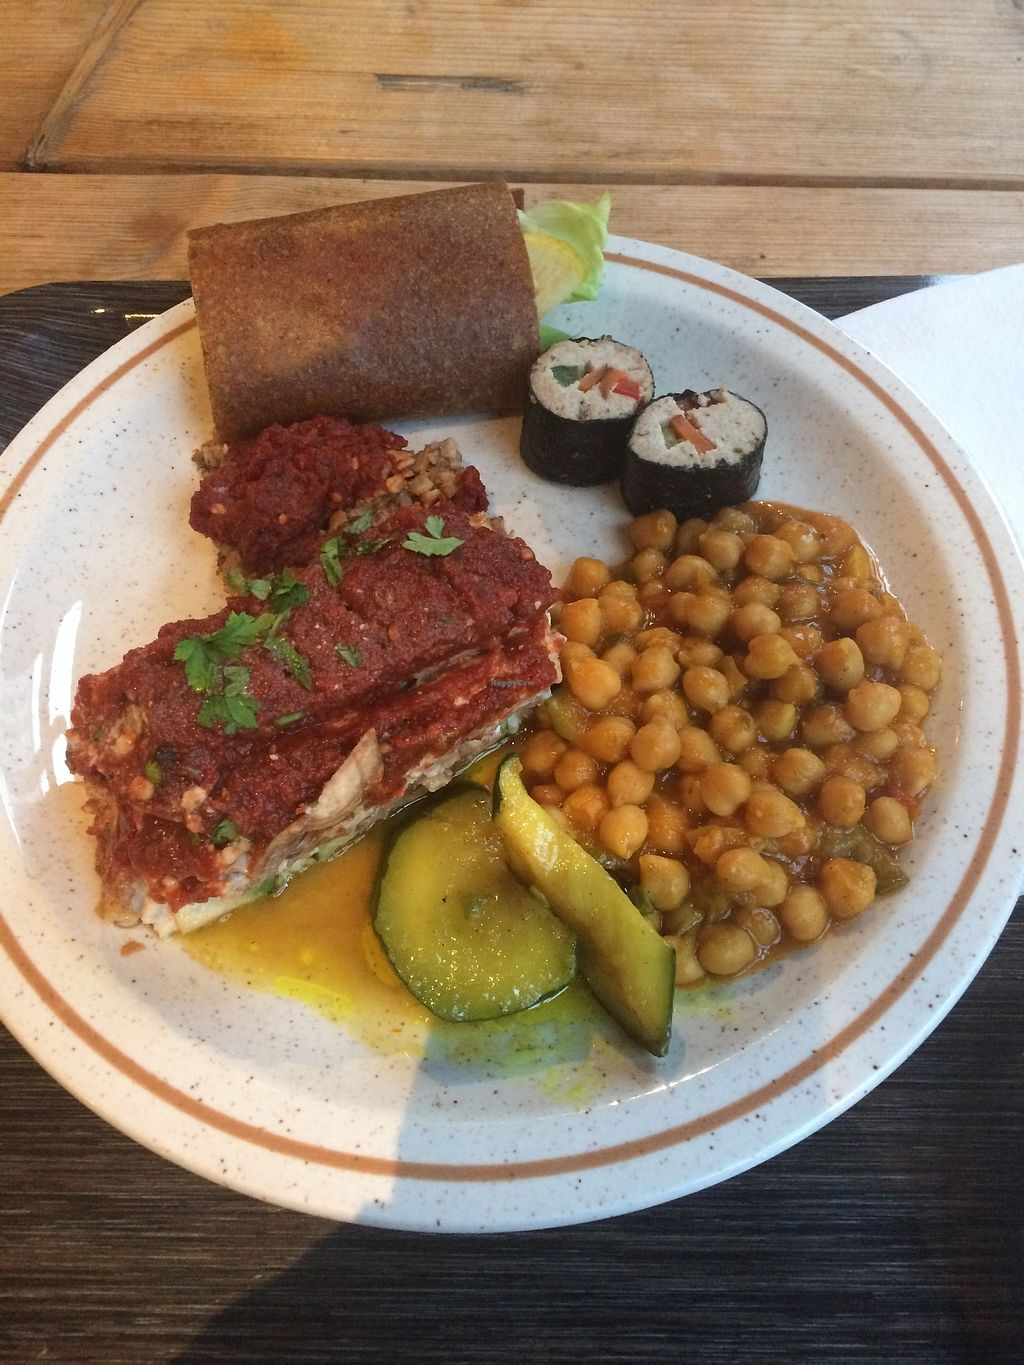 "Photo of Moonfood  by <a href=""/members/profile/sabrinajh"">sabrinajh</a> <br/>My plate. Cost about 15€. It includes the lasagna (very nice), and the chickpeas were in a curry sauce (my favourite item on the plate).  <br/> January 8, 2018  - <a href='/contact/abuse/image/57113/344355'>Report</a>"